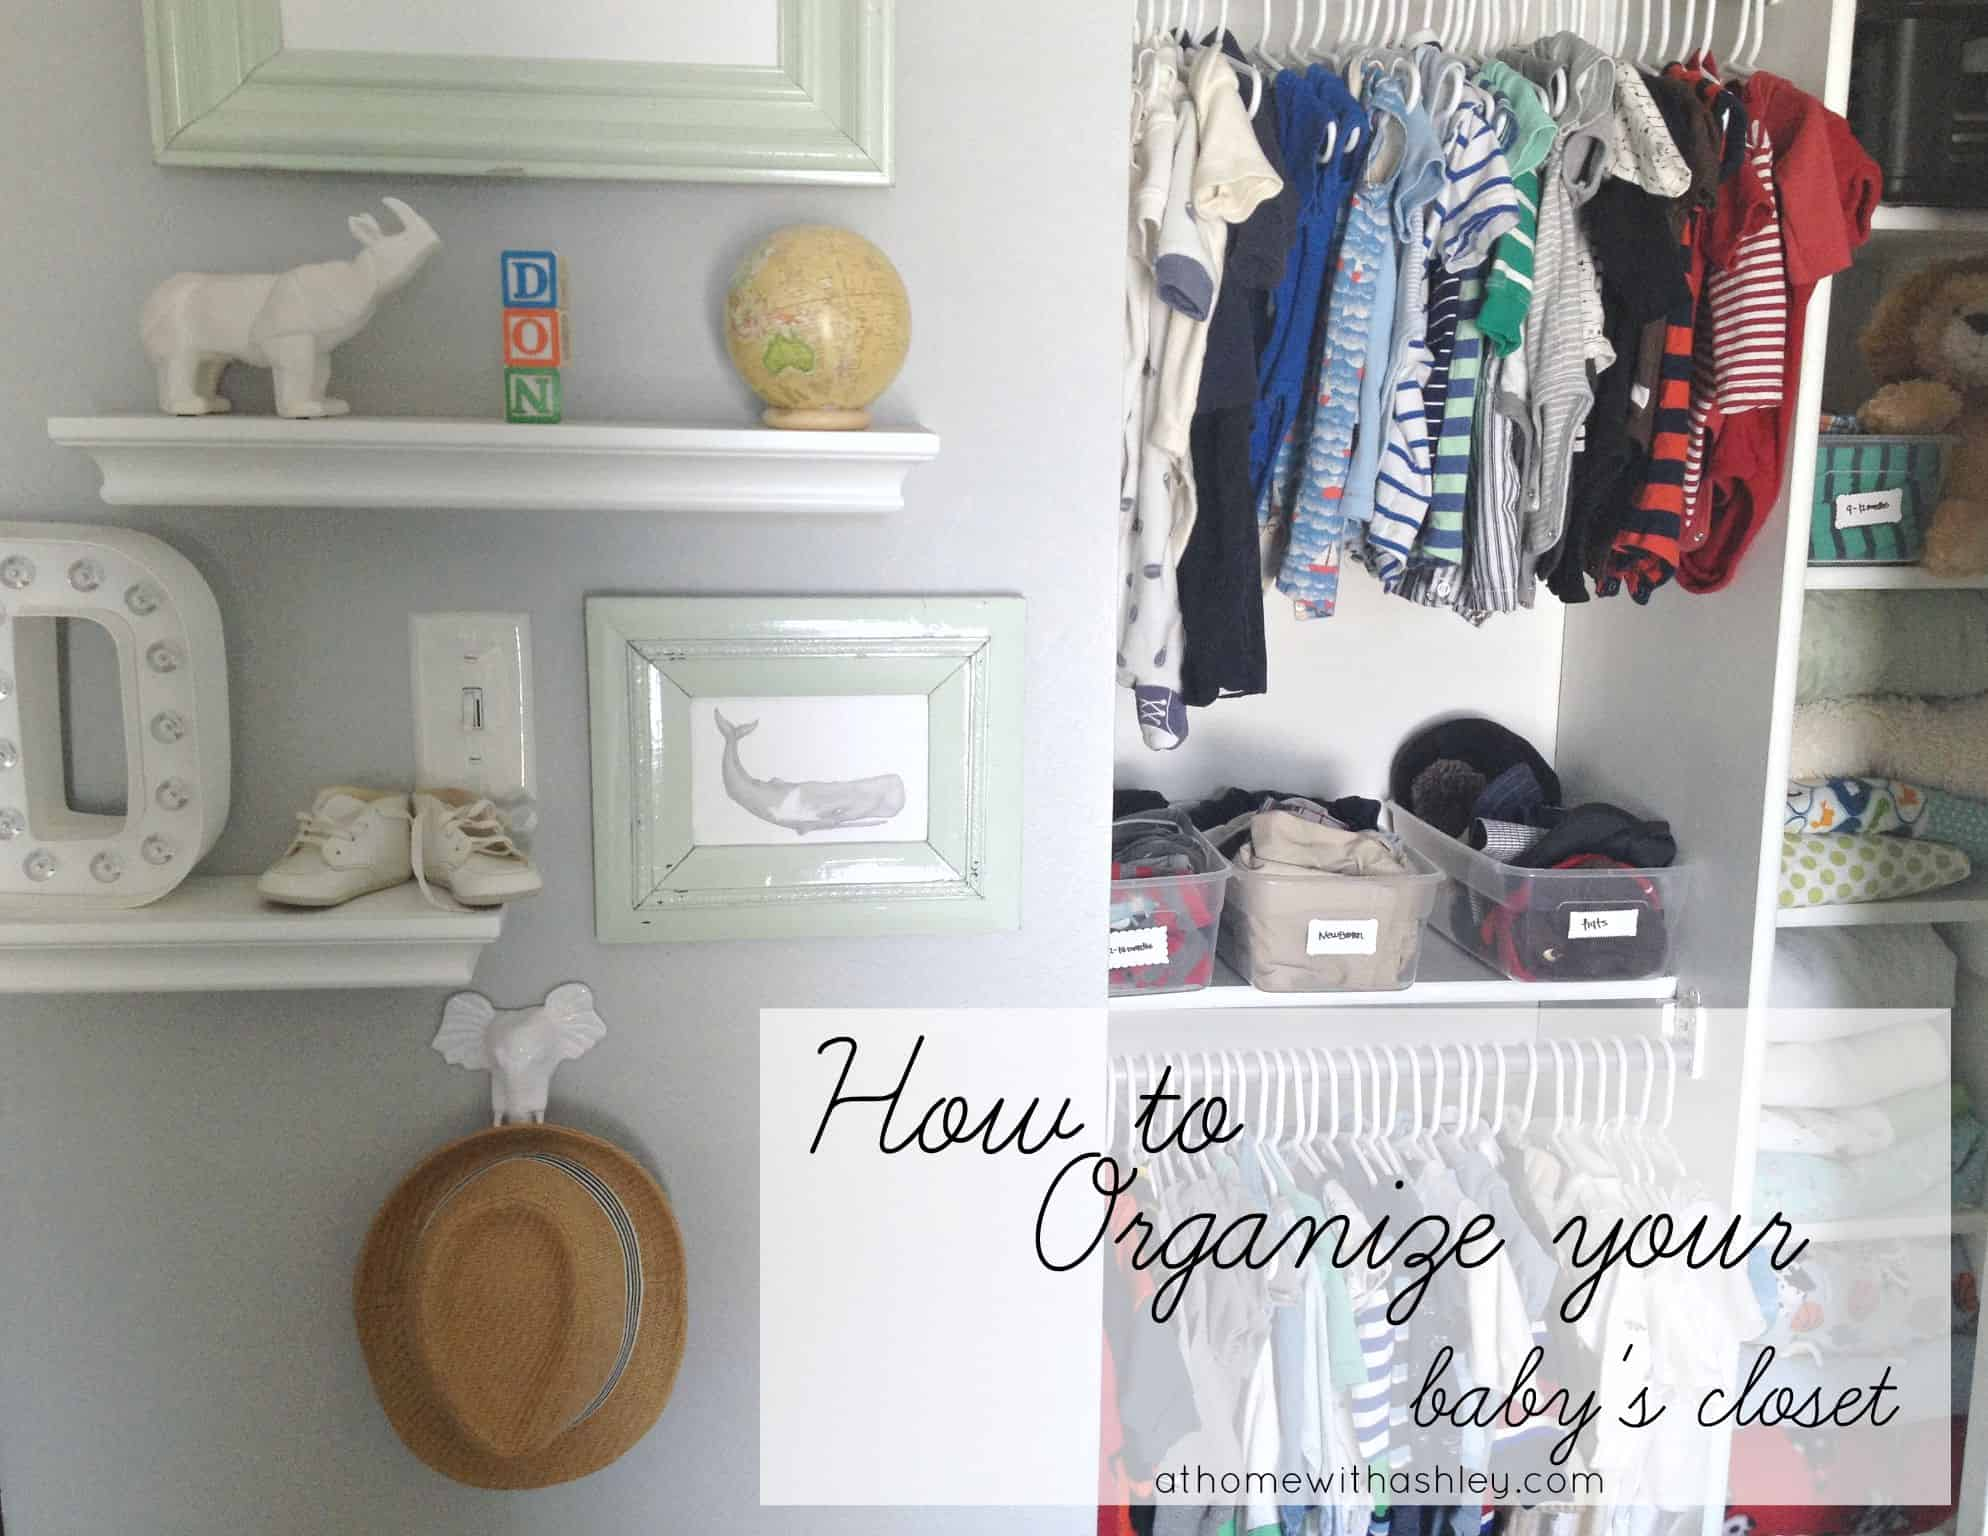 Closet Organization The Best Way To Organize Your Baby S Closet At Home With Ashley